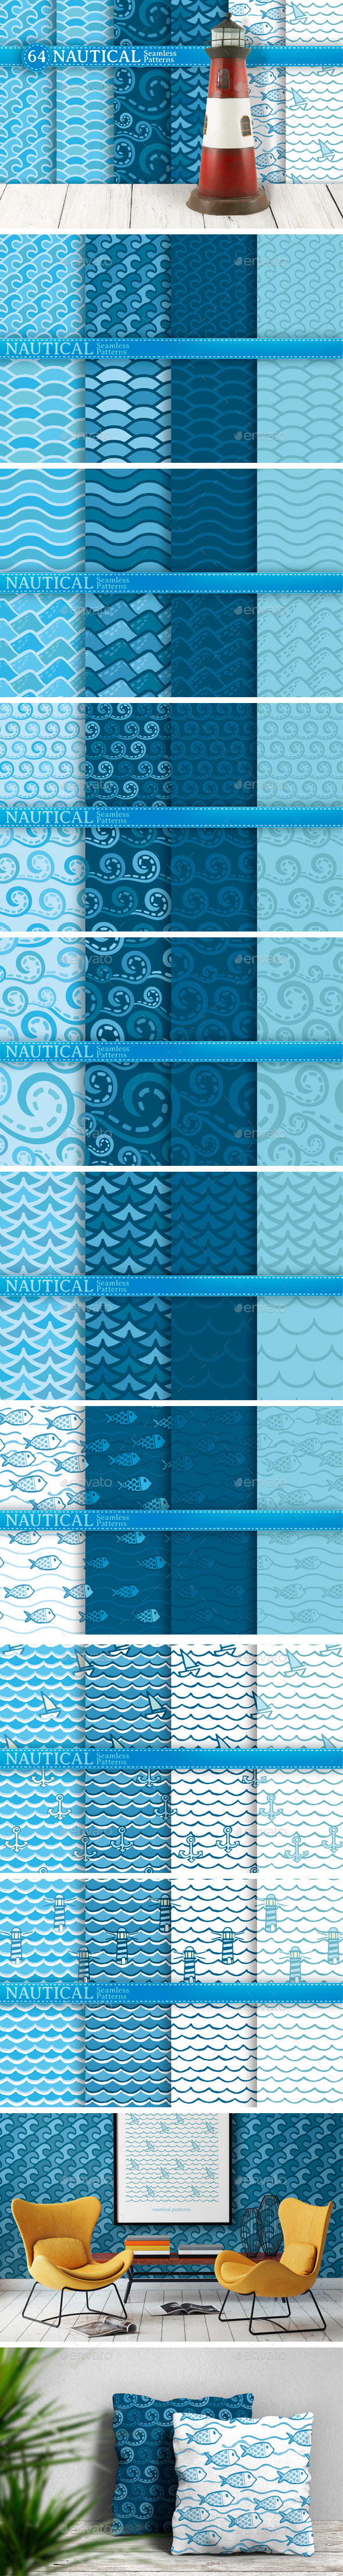 Nautical Seamless Patterns - Patterns Decorative